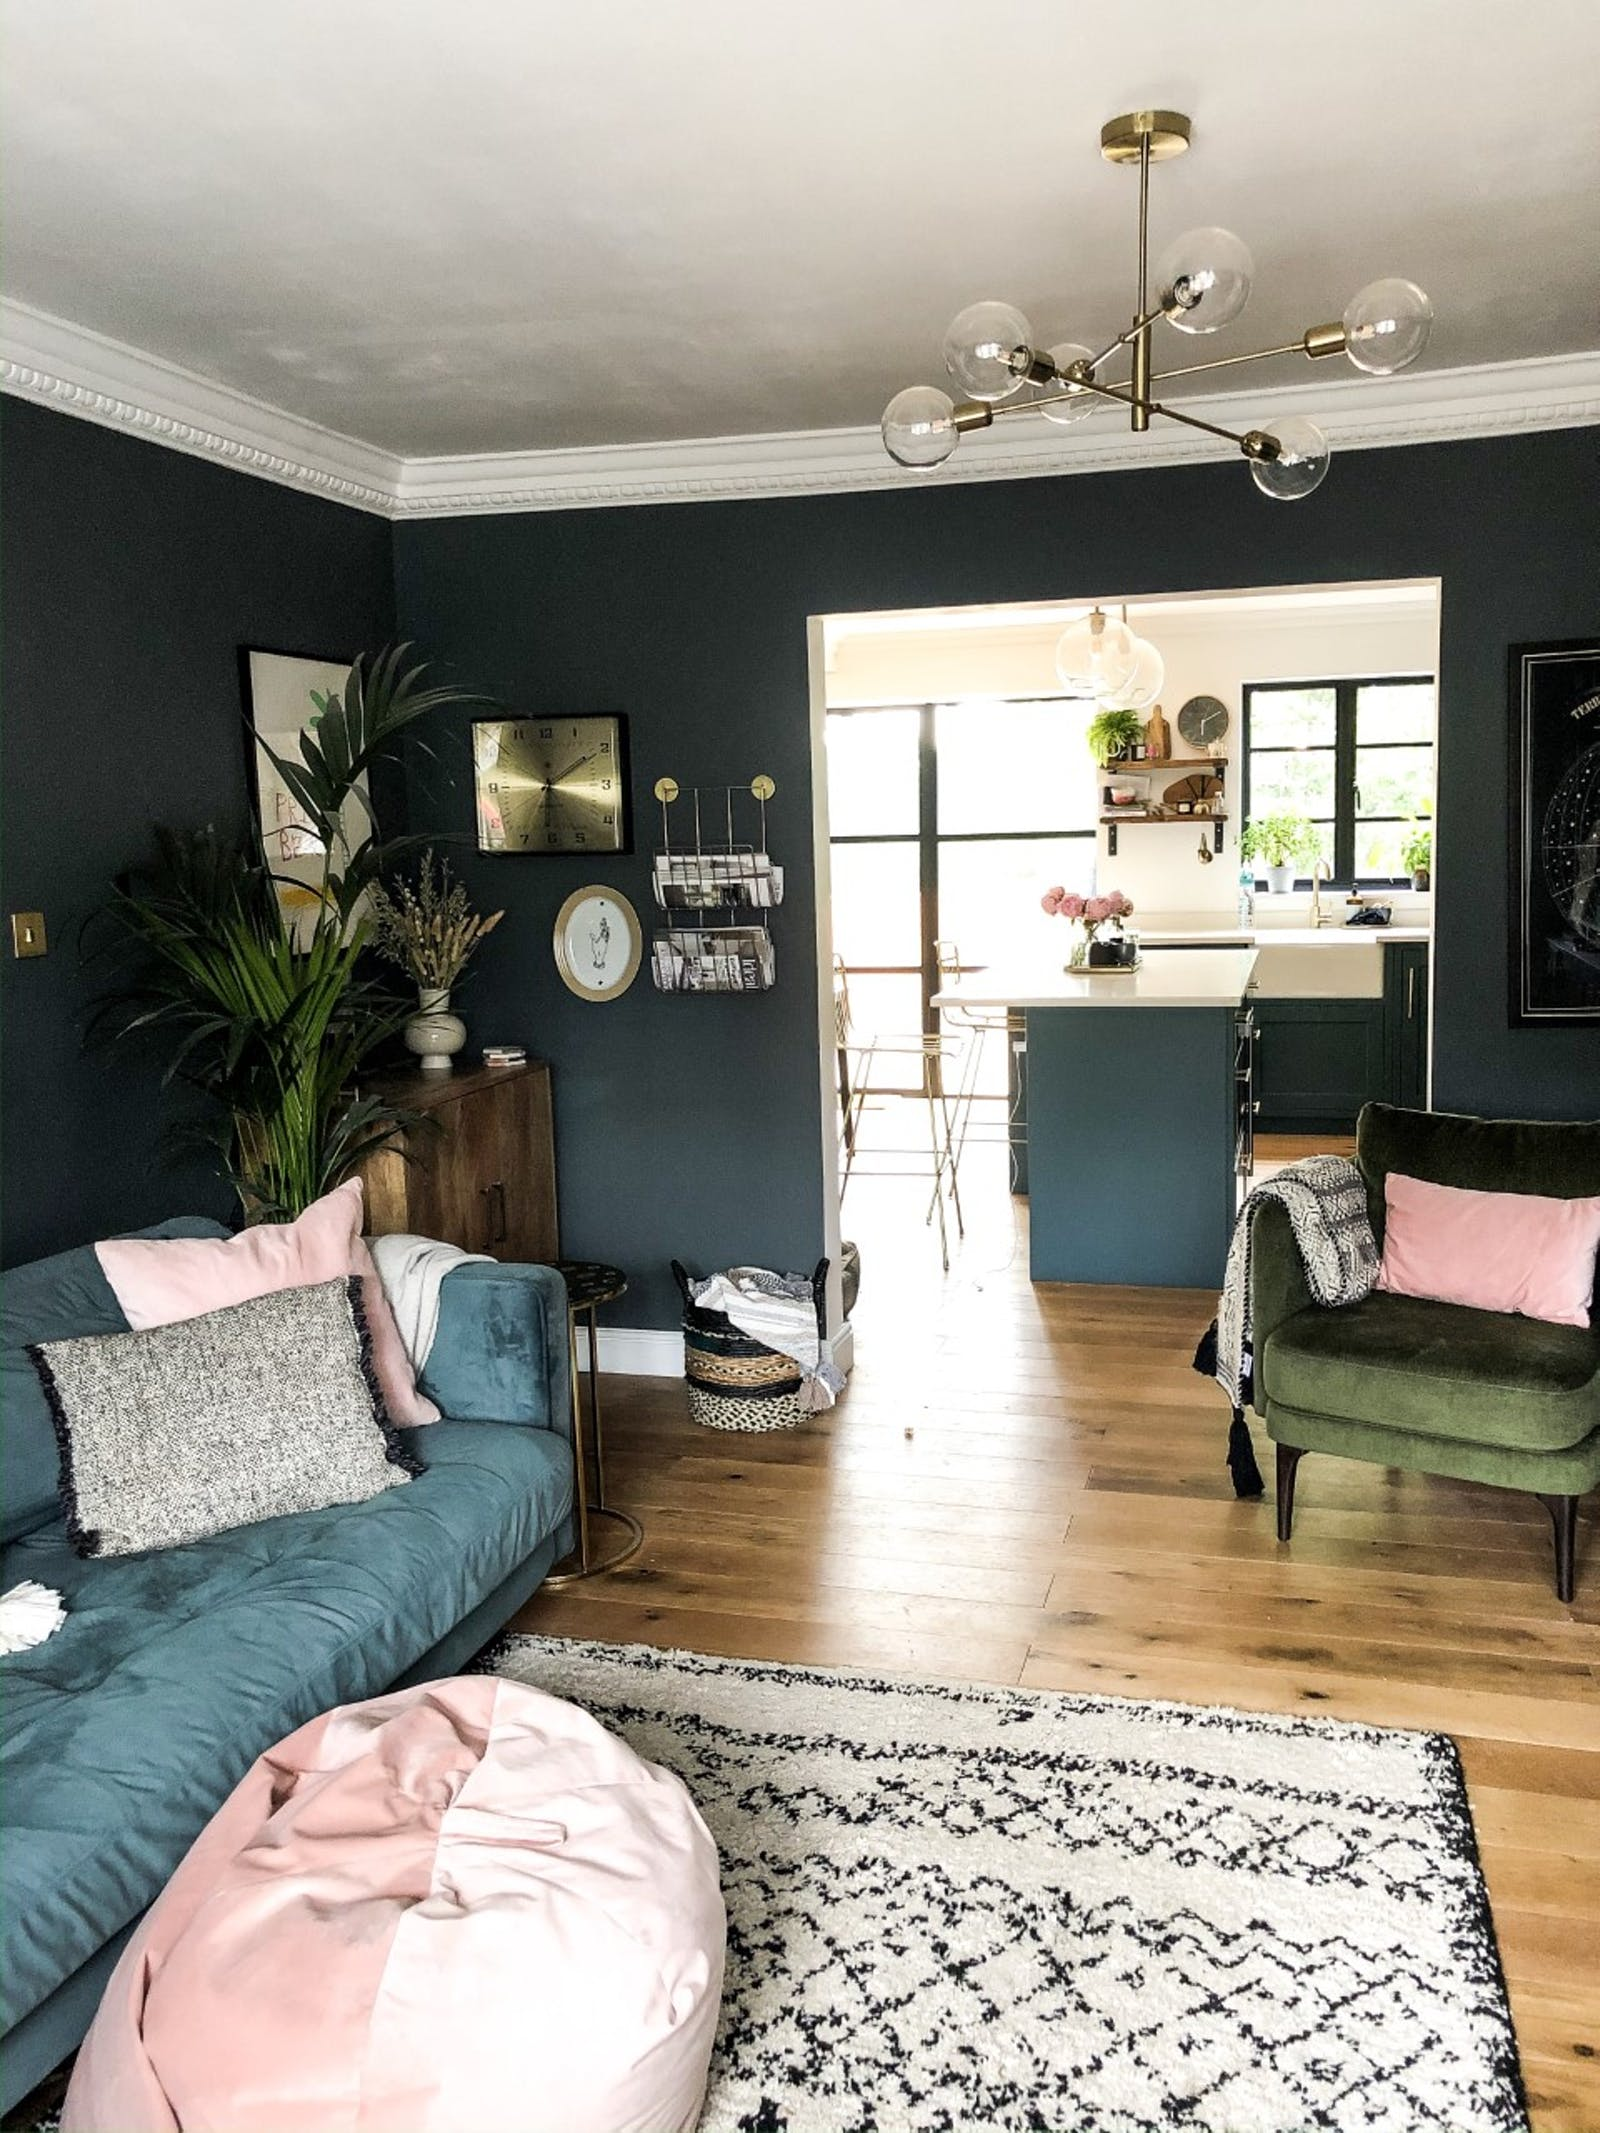 Living room painted in a dark teal colour